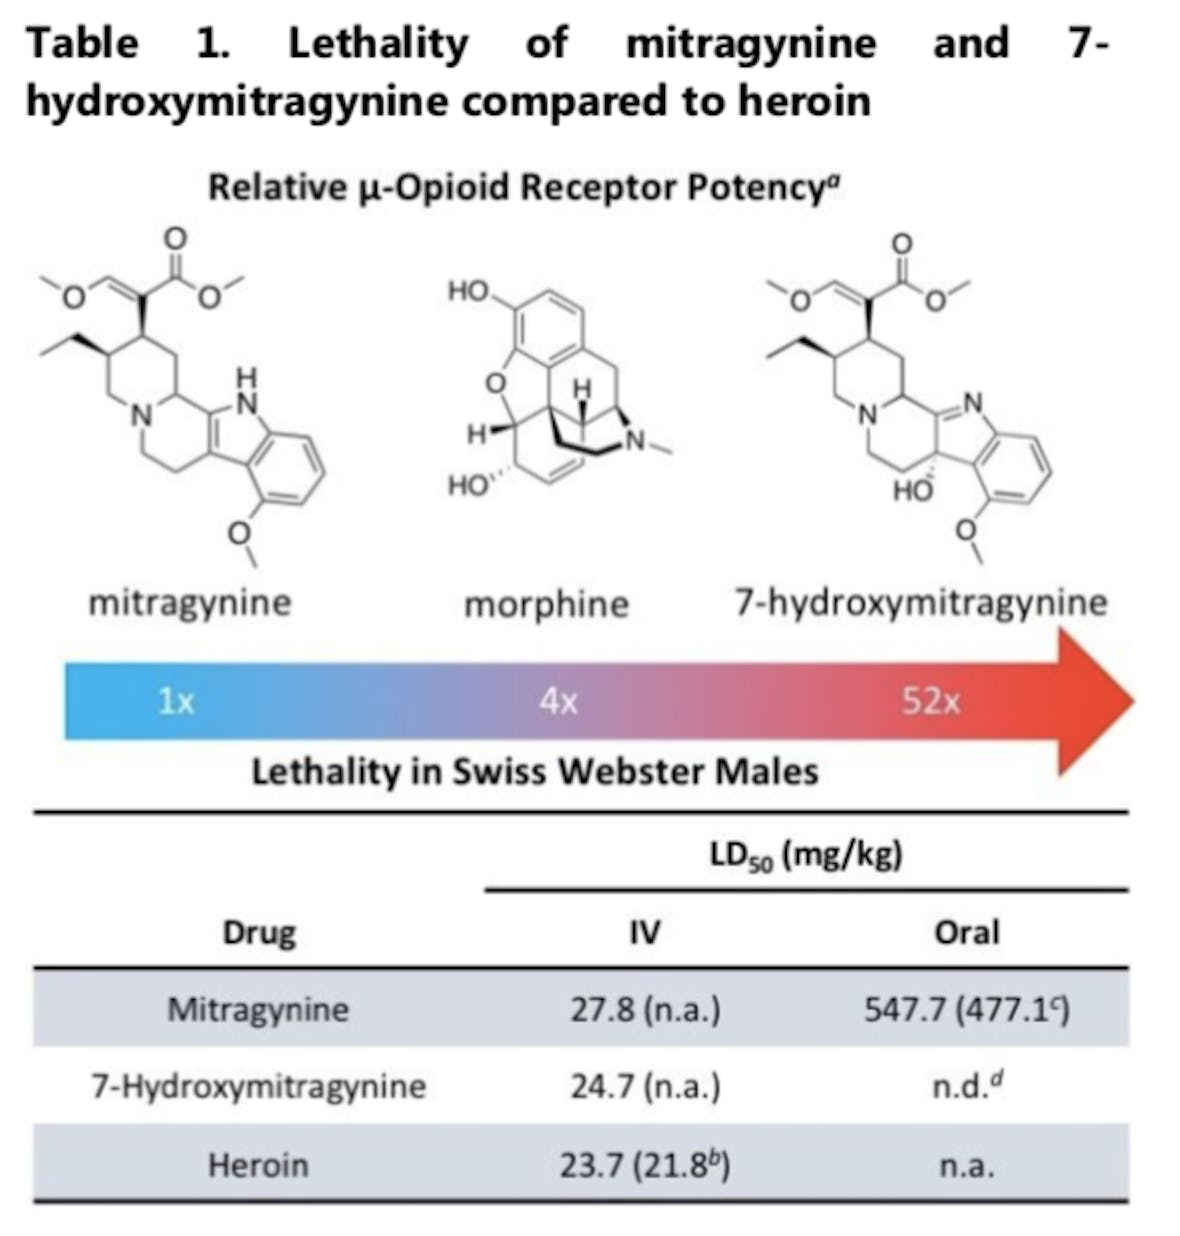 When scientists injected Swiss Webster mice with heroin, mitragynine, and 7-hydroxymitragynine, they found that similar dosages of all three molecules killed the mice.